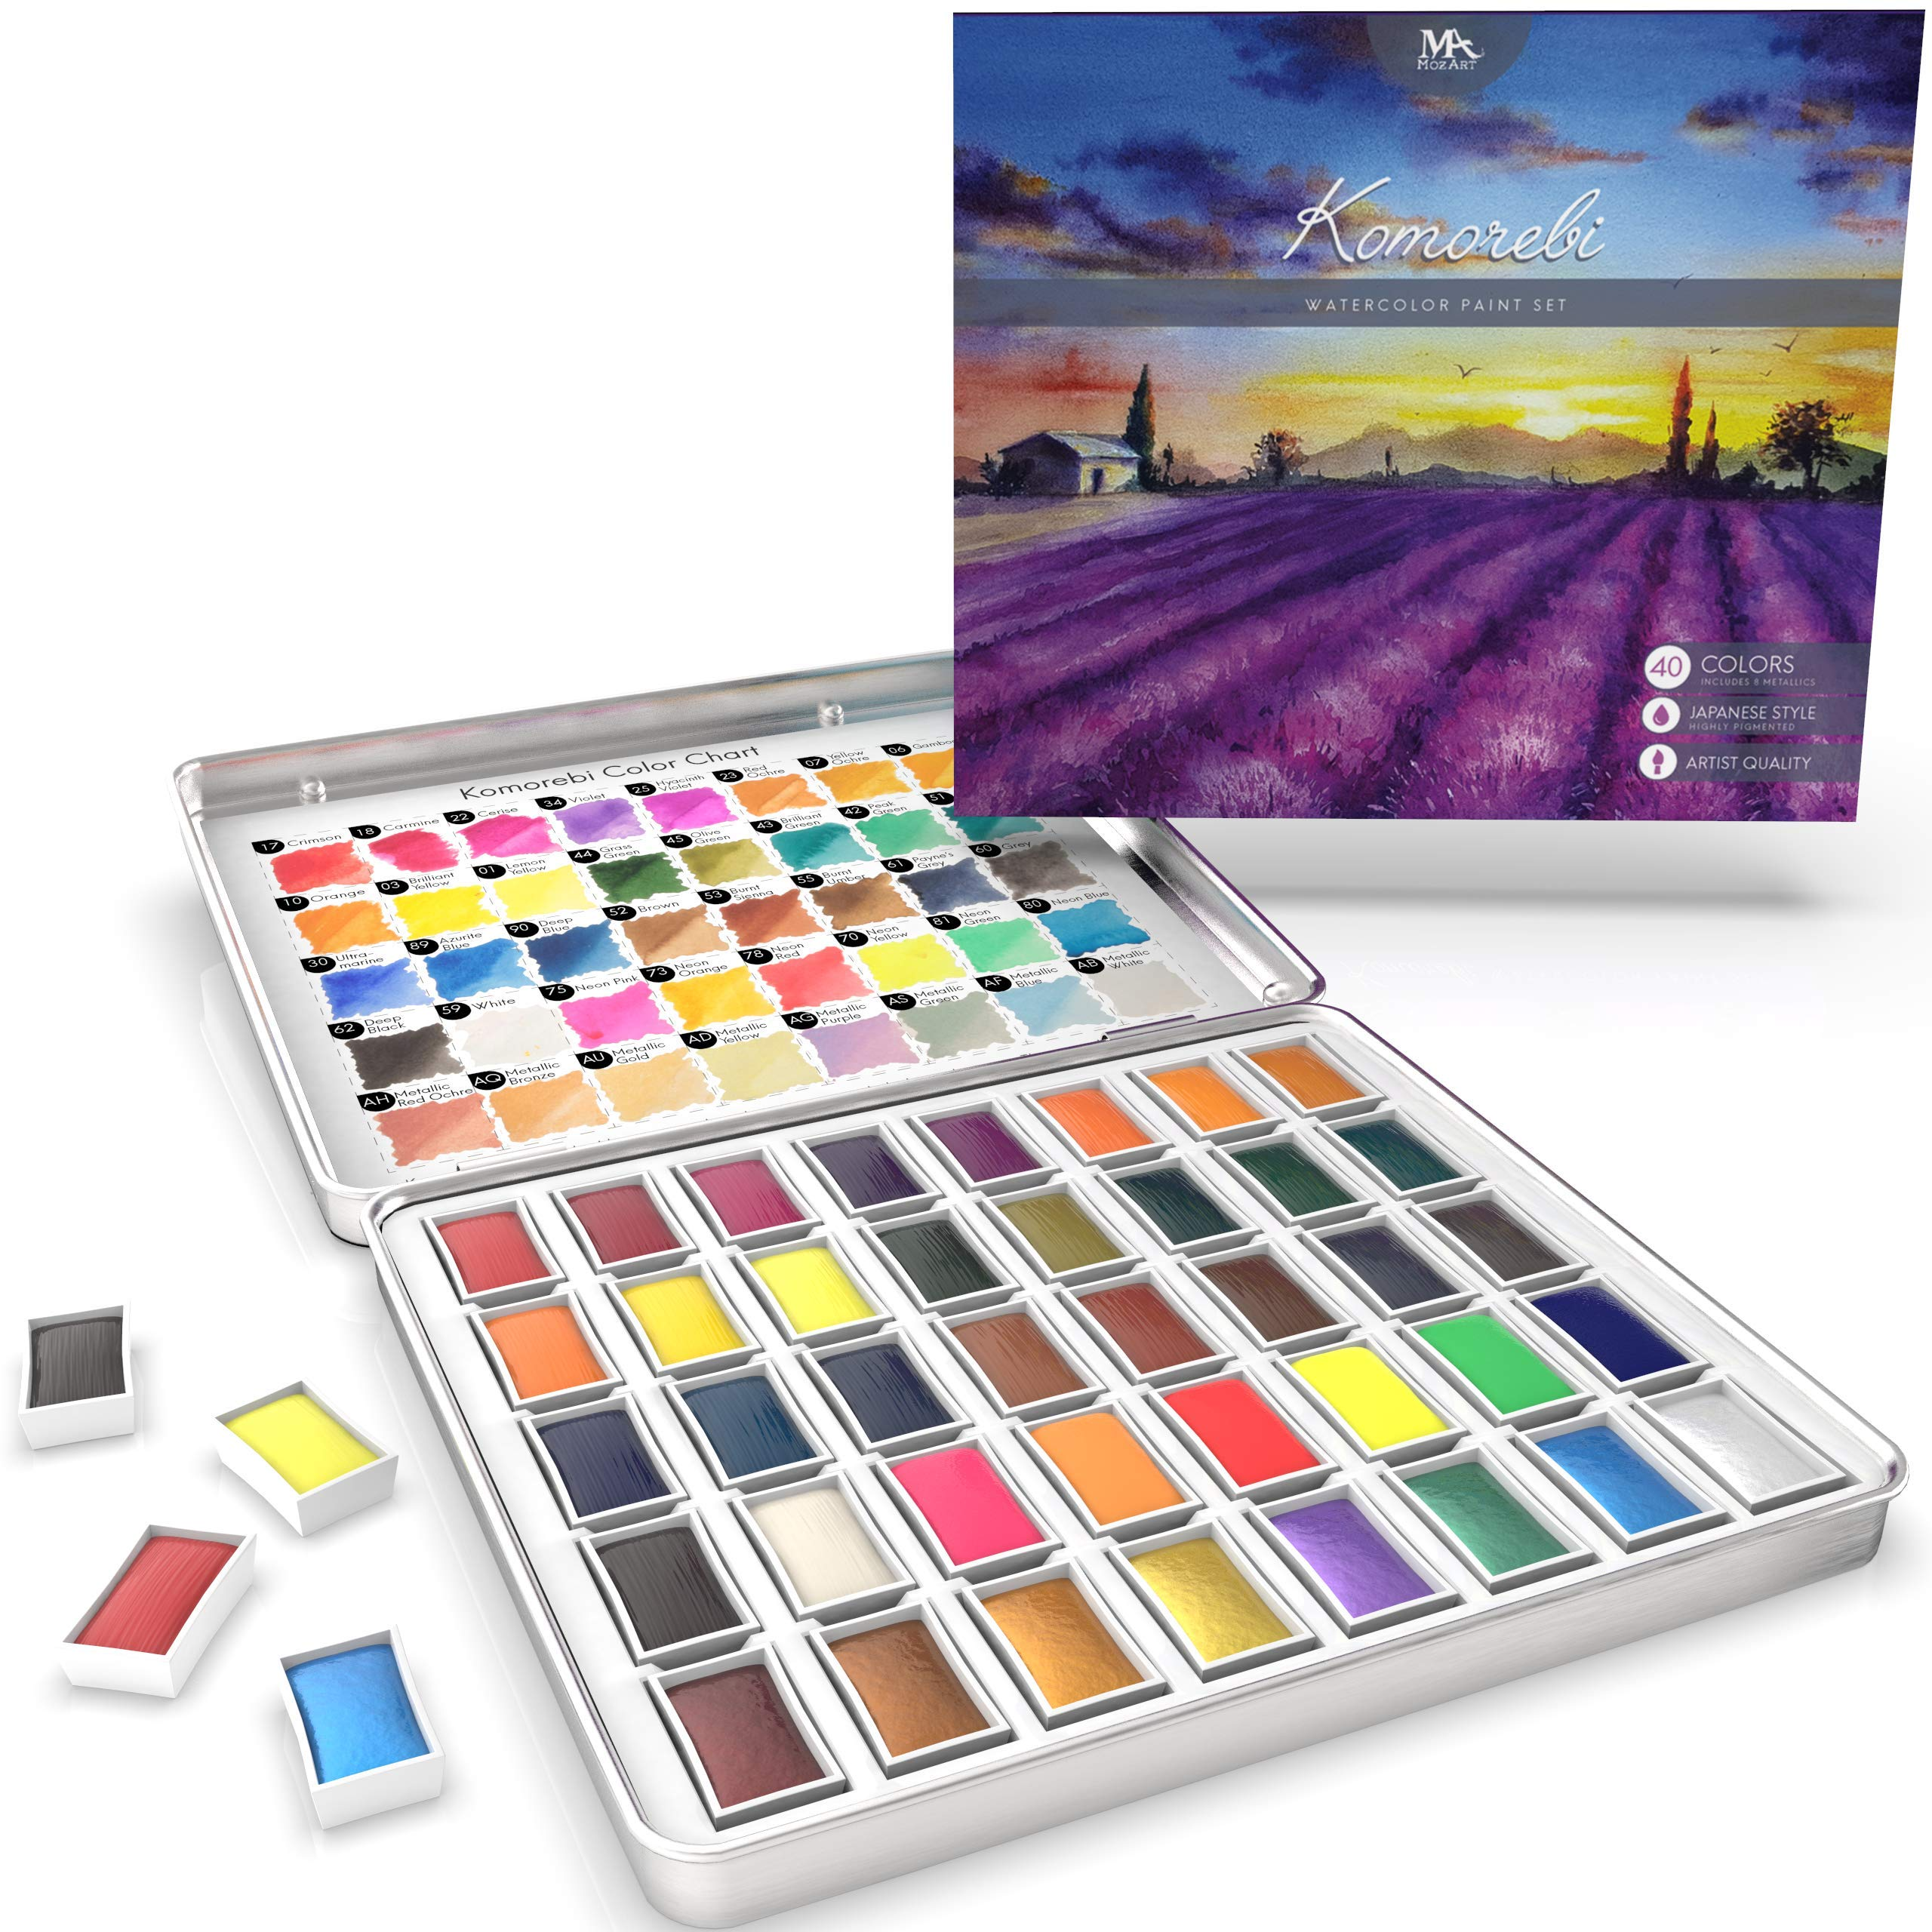 MozArt Supplies Komorebi Japanese Watercolor Paint Set - 40 Colors - Including Metallic and Neon - Artist Quality - Richly Pigmented- Perfect for Artists, Students or Hobbyists by MozArt Supplies